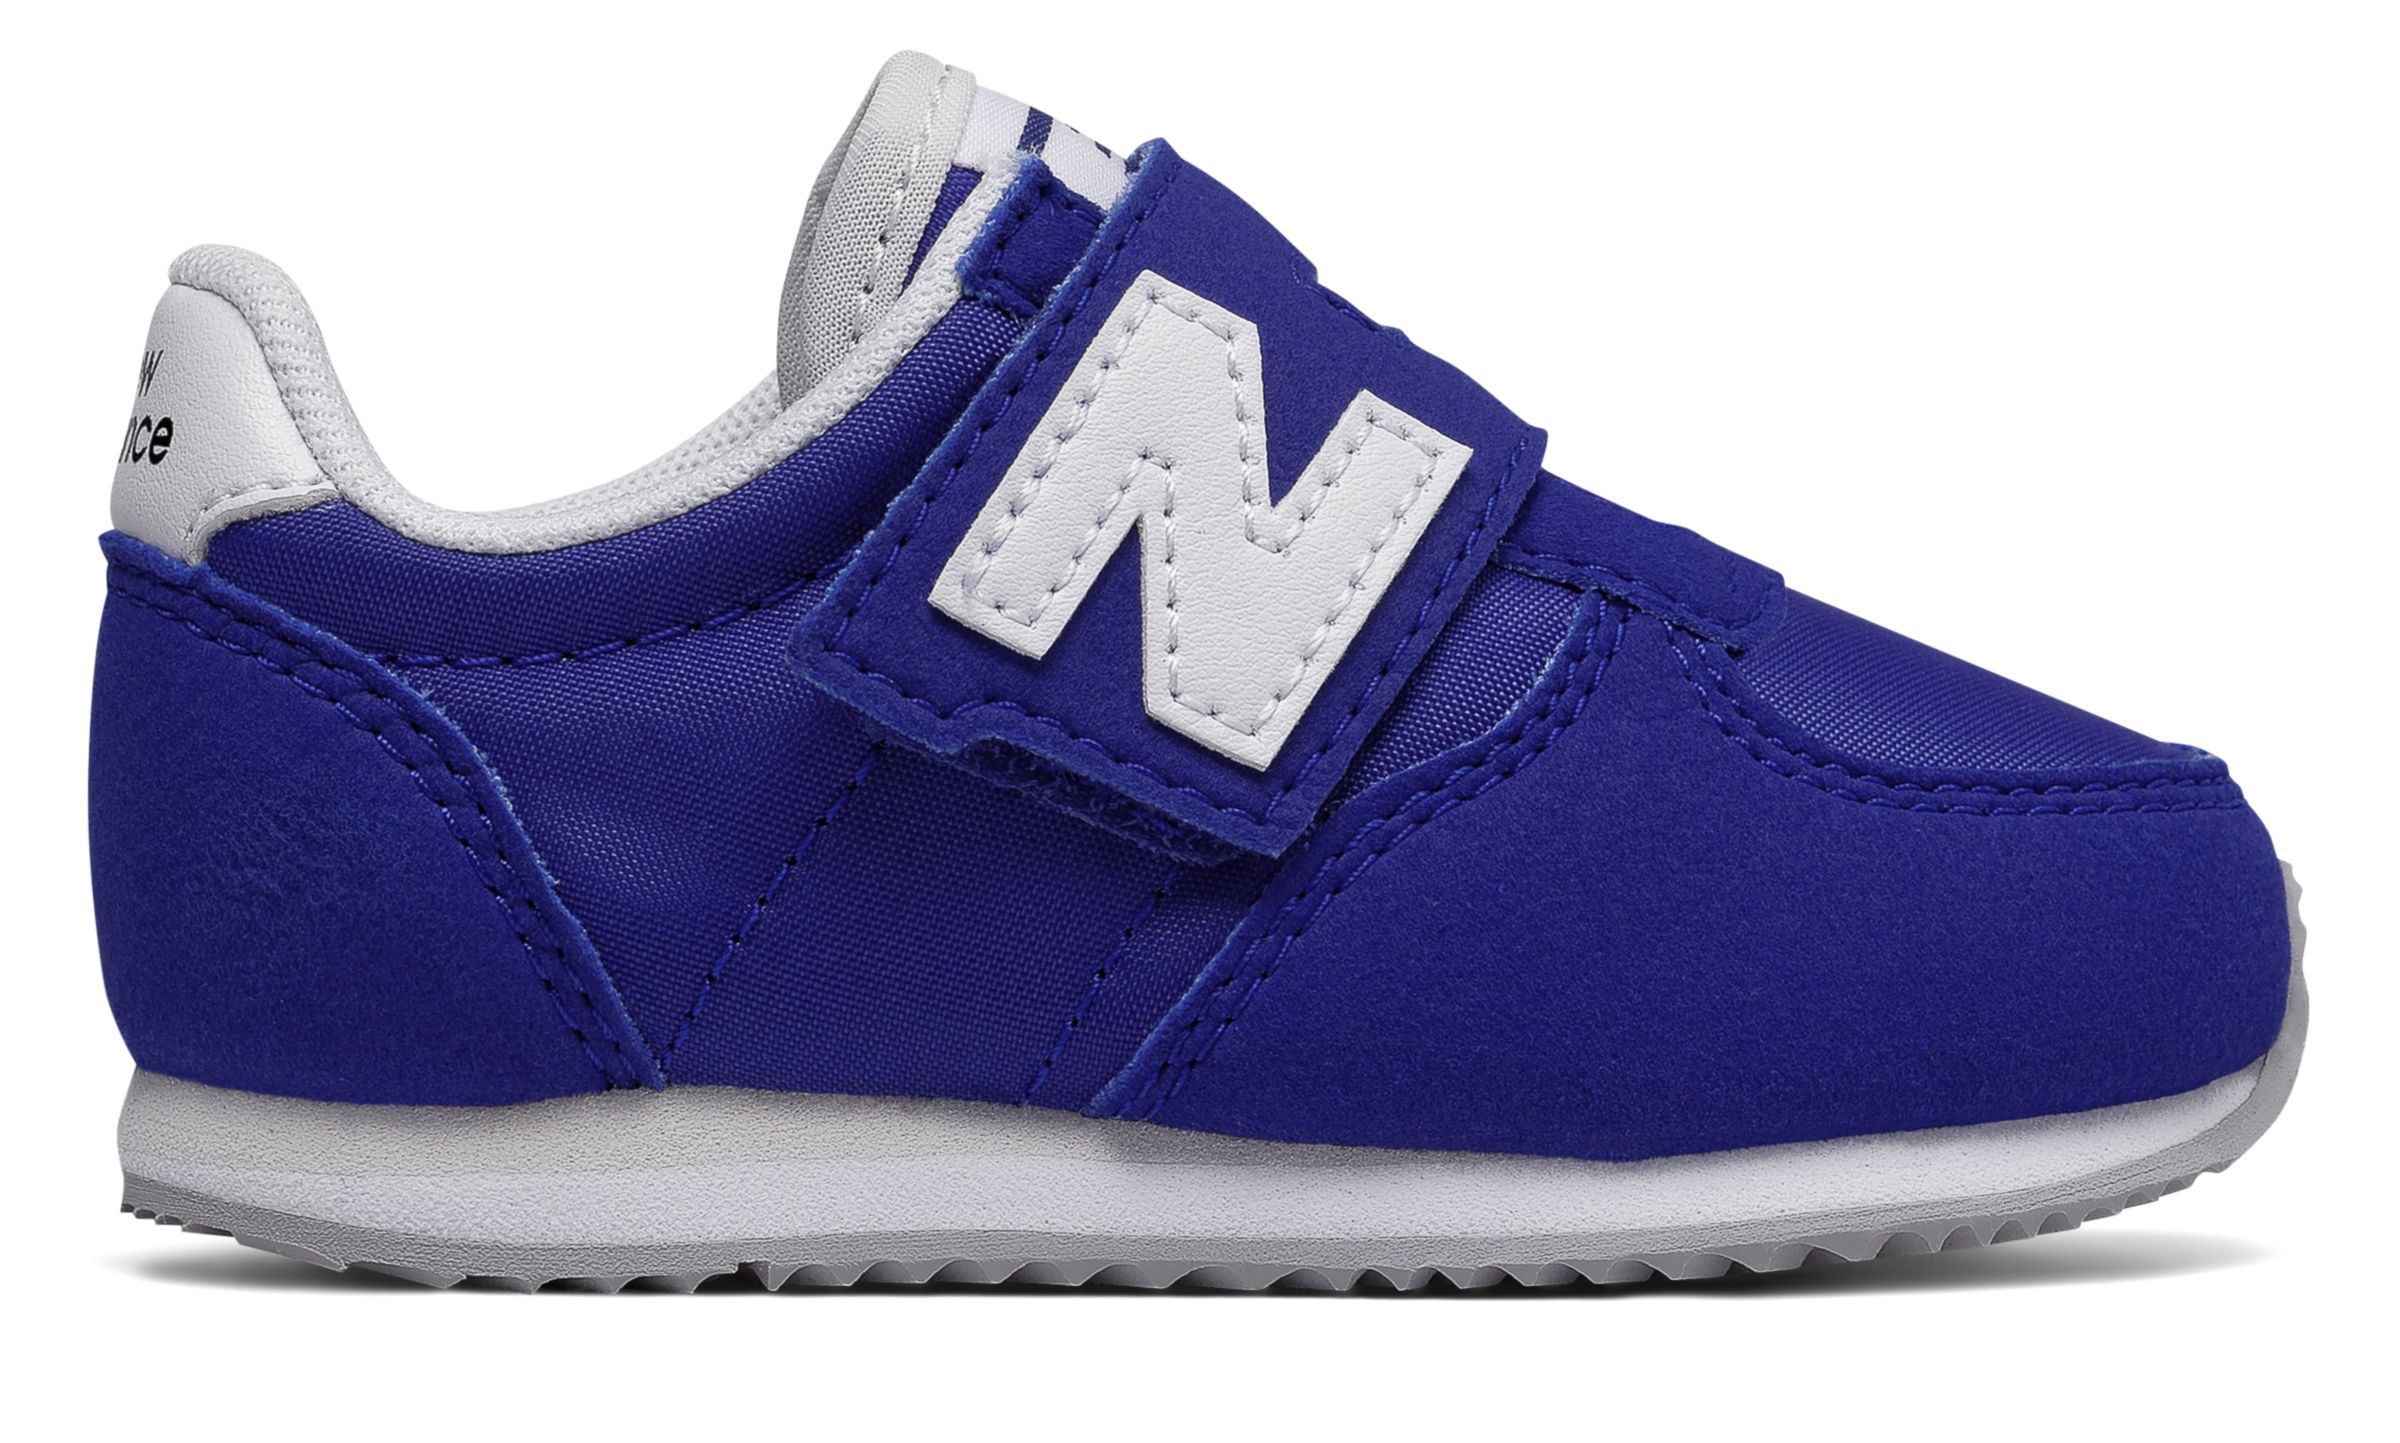 NB 220 Hook and Loop, Blue with White